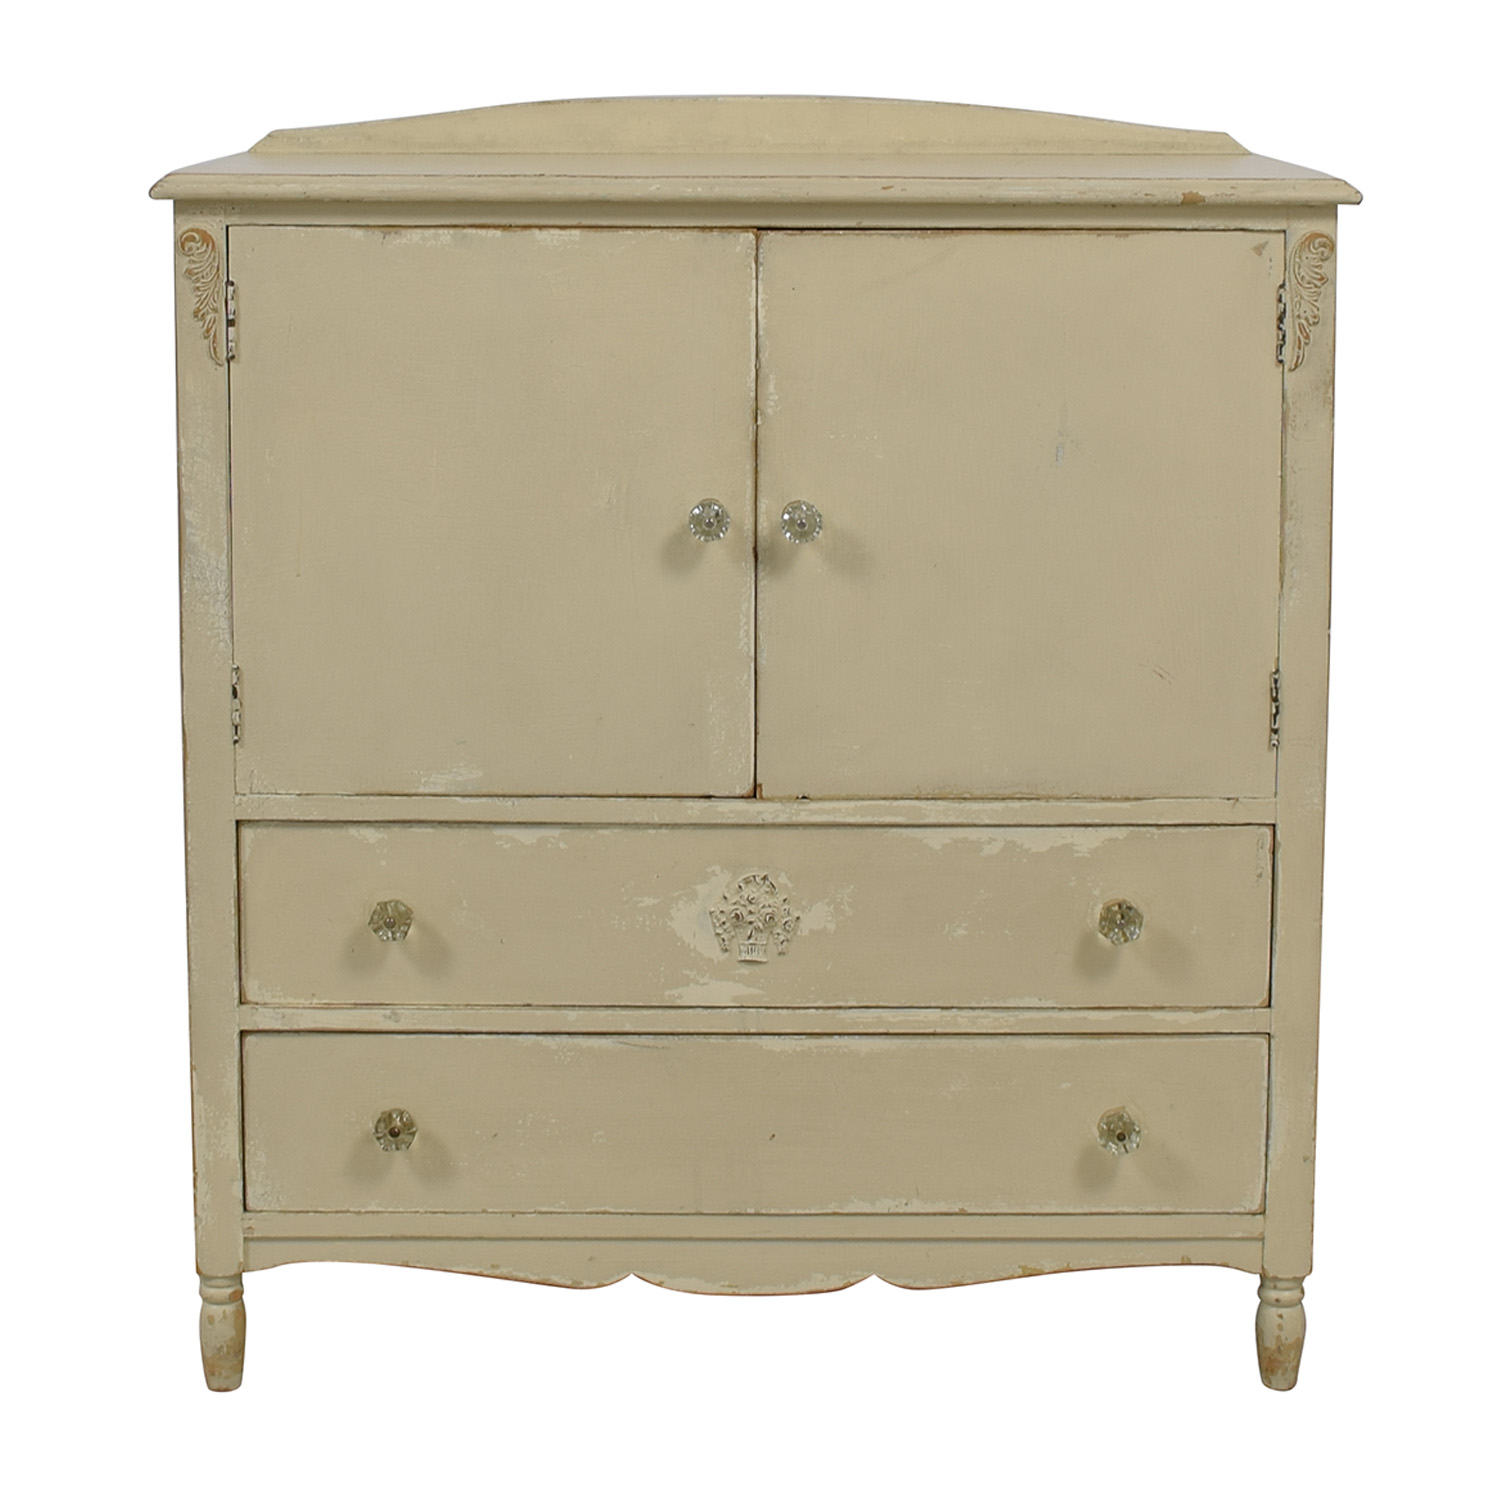 Shabby Chic Shabby Chic Vintage Grey Five-Drawer Dresser light grey